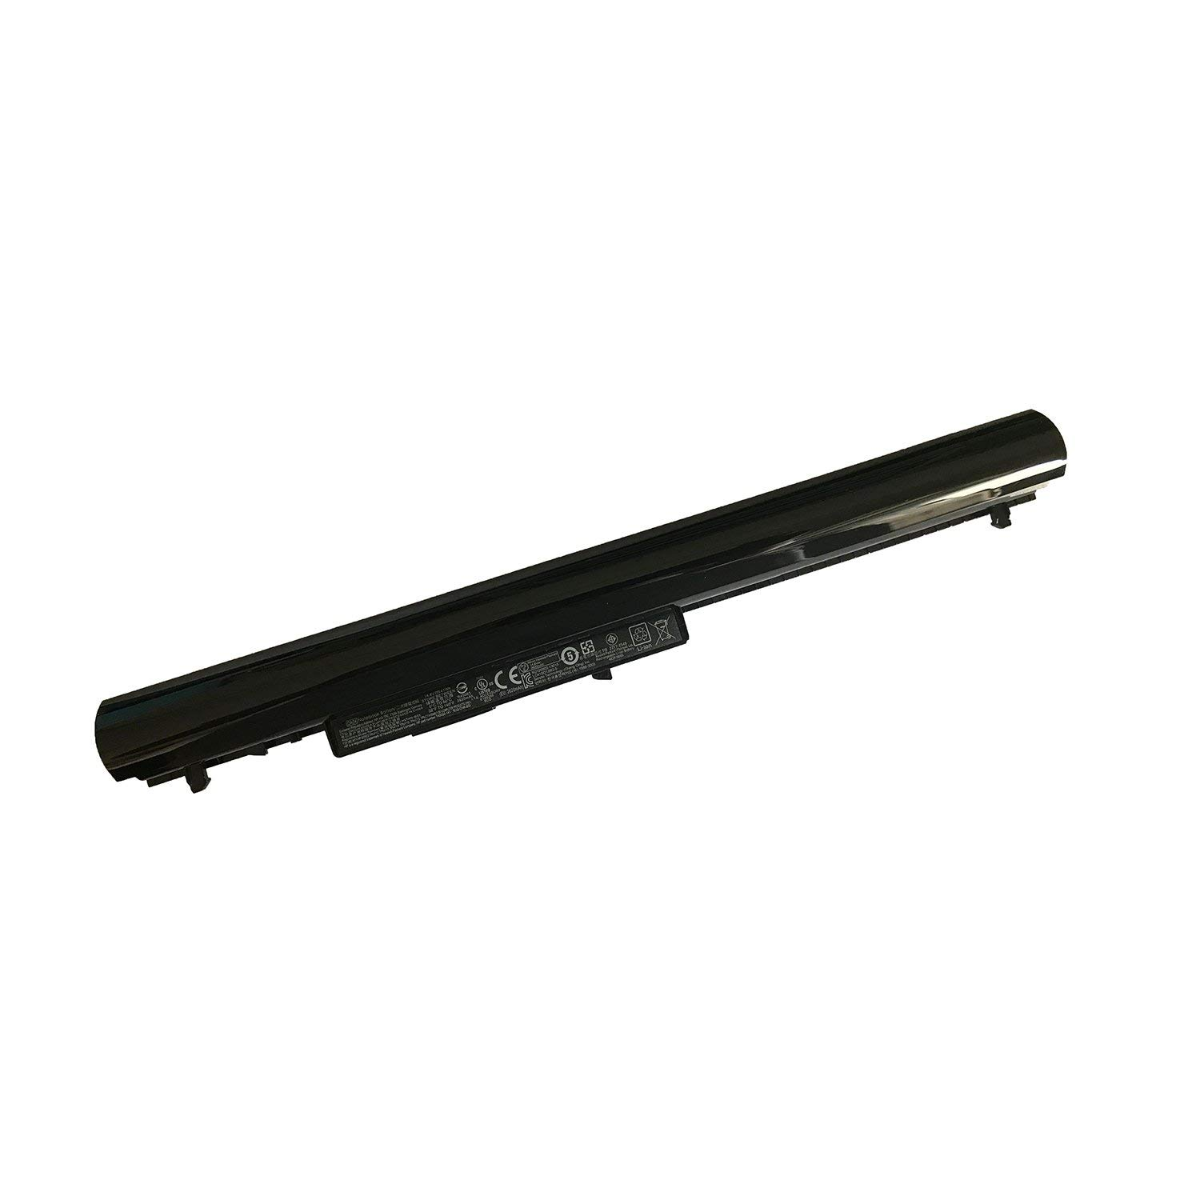 Μπαταρία Laptop - Battery for HP 15-G020SR 15-G021AU 15-G021CA 15-G021CY 15-G021DS 15-G021ER 15-G021NA 15-G021NG 15-G023CL 15-G023CY OEM Υψηλής ποιότητας (Κωδ.1-BAT0002)